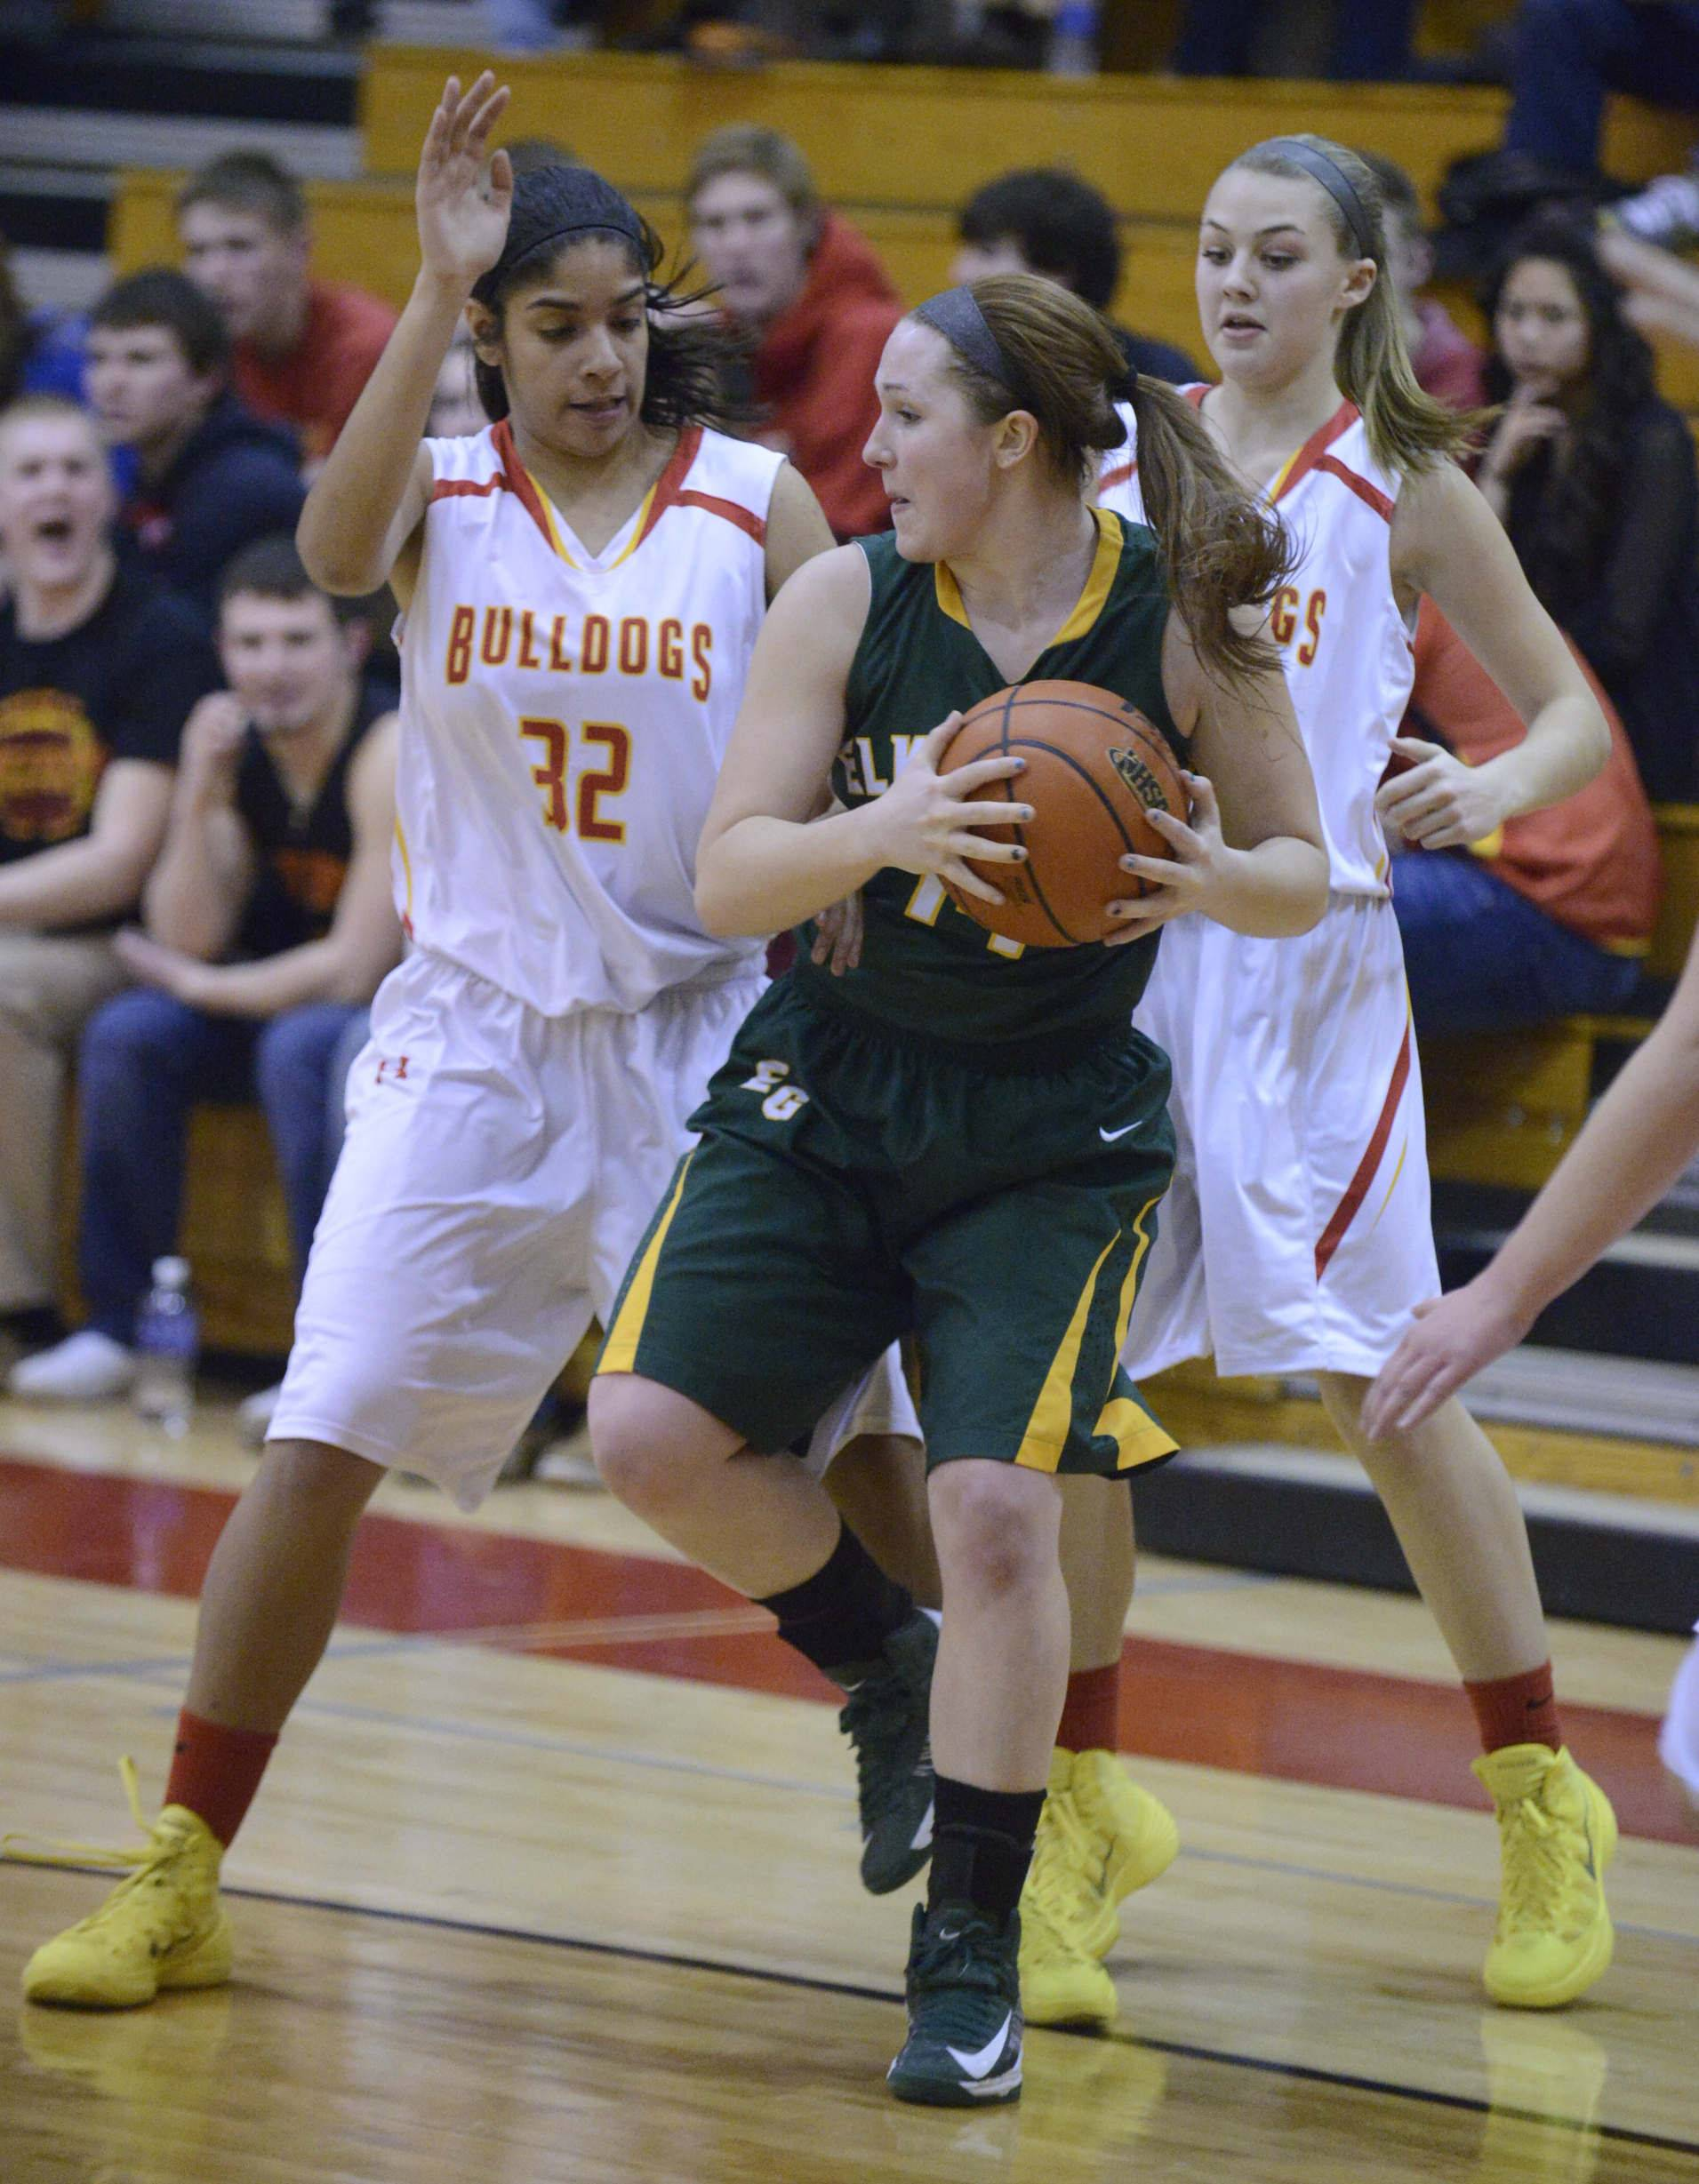 Images from the Elk Grove vs. Batavia girls basketball game Tuesday, February 18, 2014.